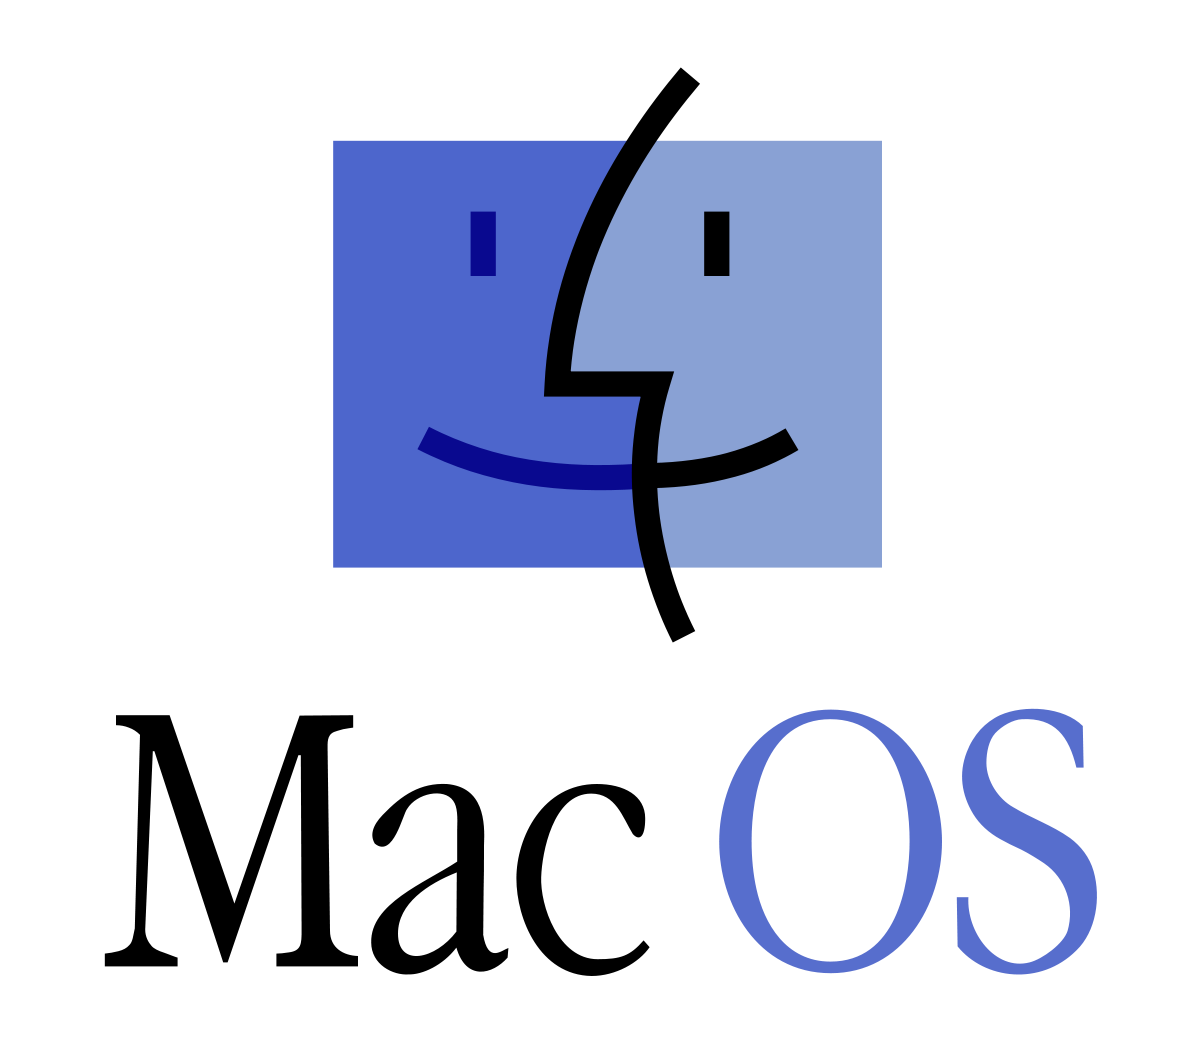 Svg mac finder. Classic os wikipedia